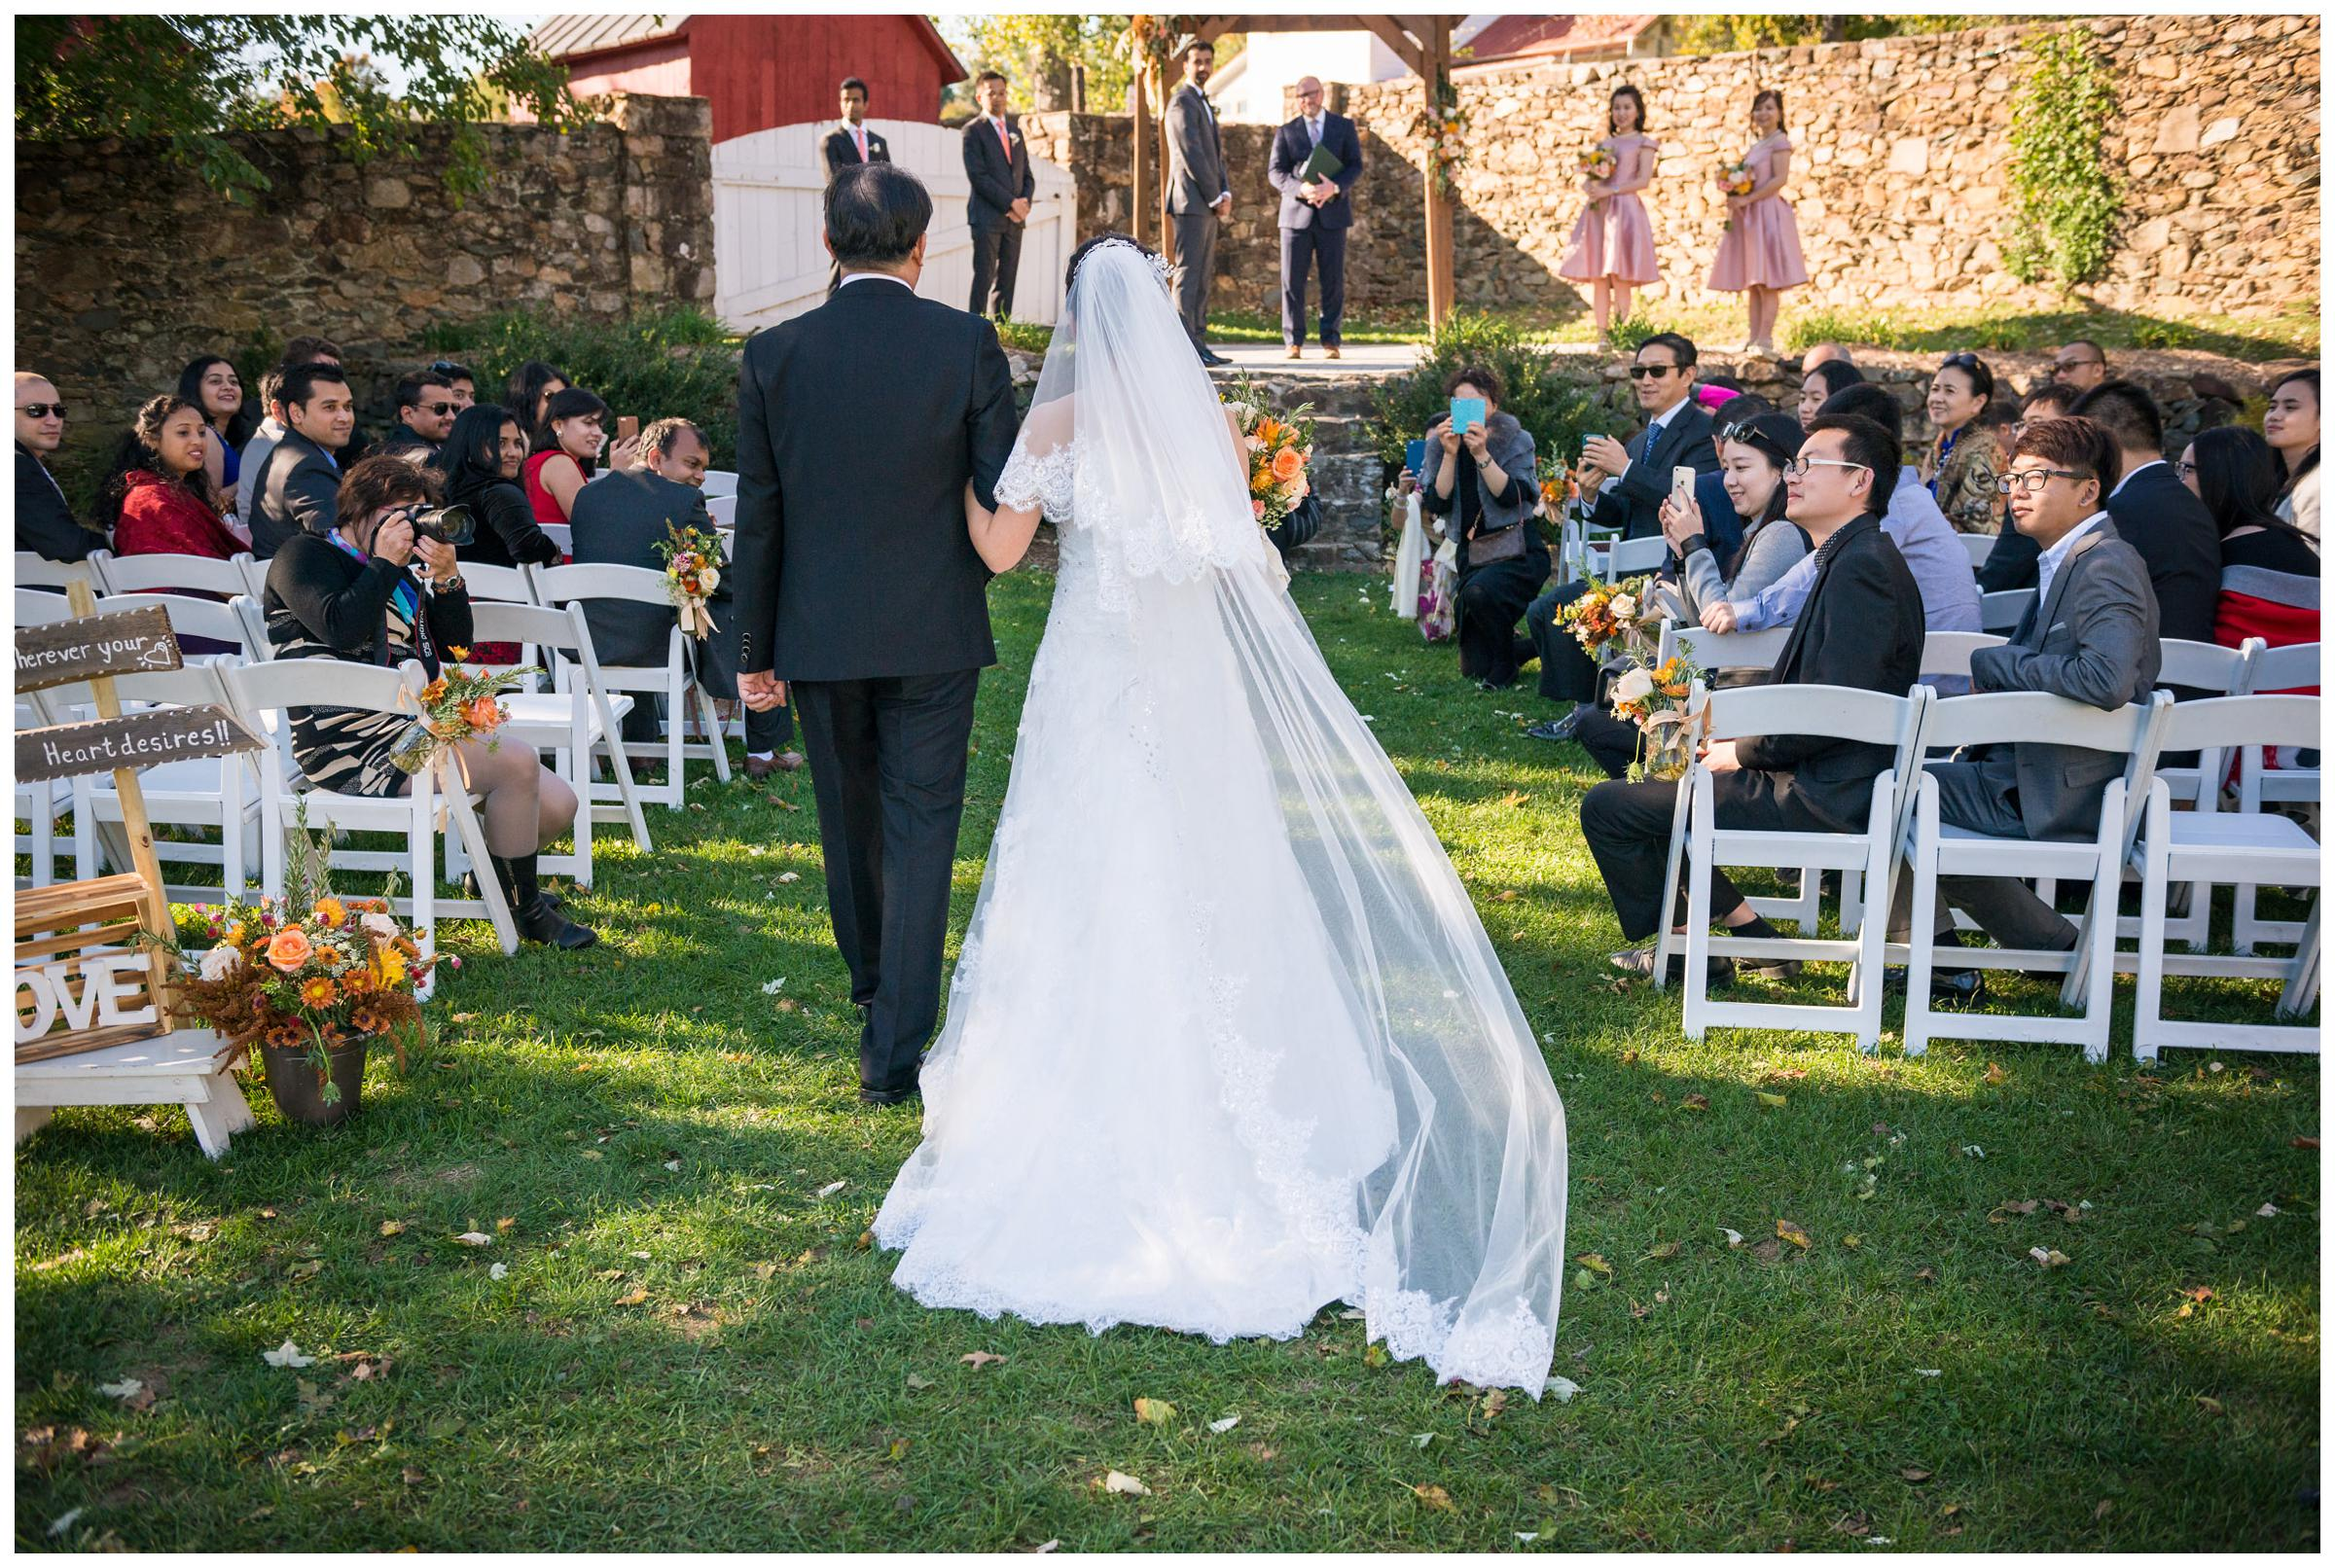 Bride escorted down the aisle by her father.